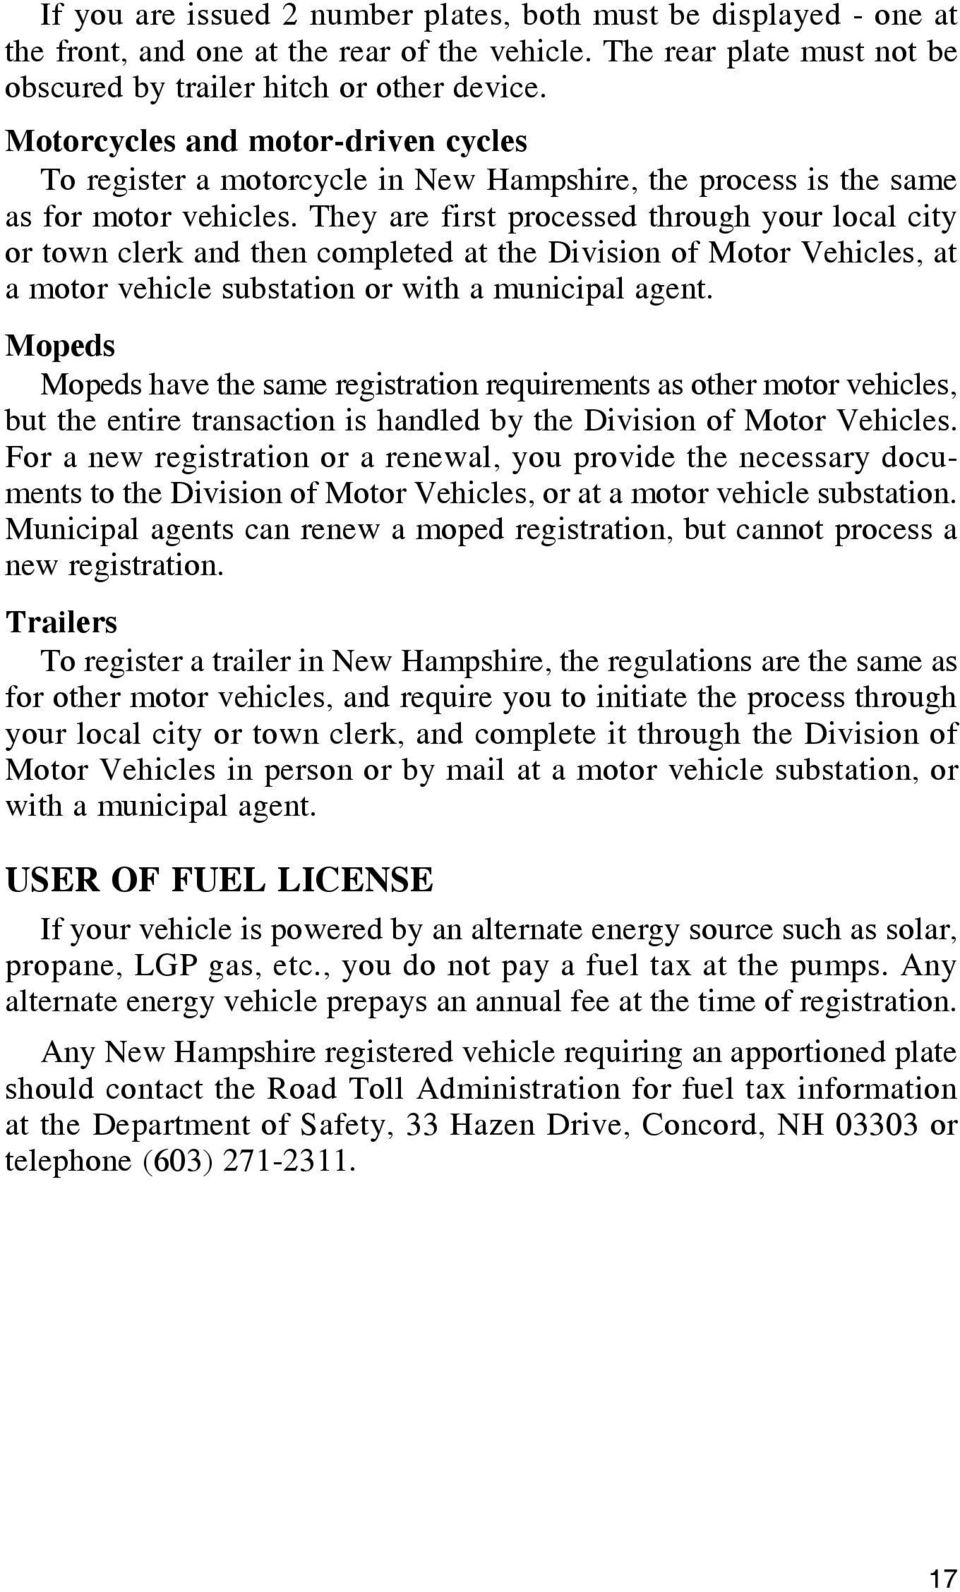 They are first processed through your local city or town clerk and then completed at the Division of Motor Vehicles, at a motor vehicle substation or with a municipal agent.